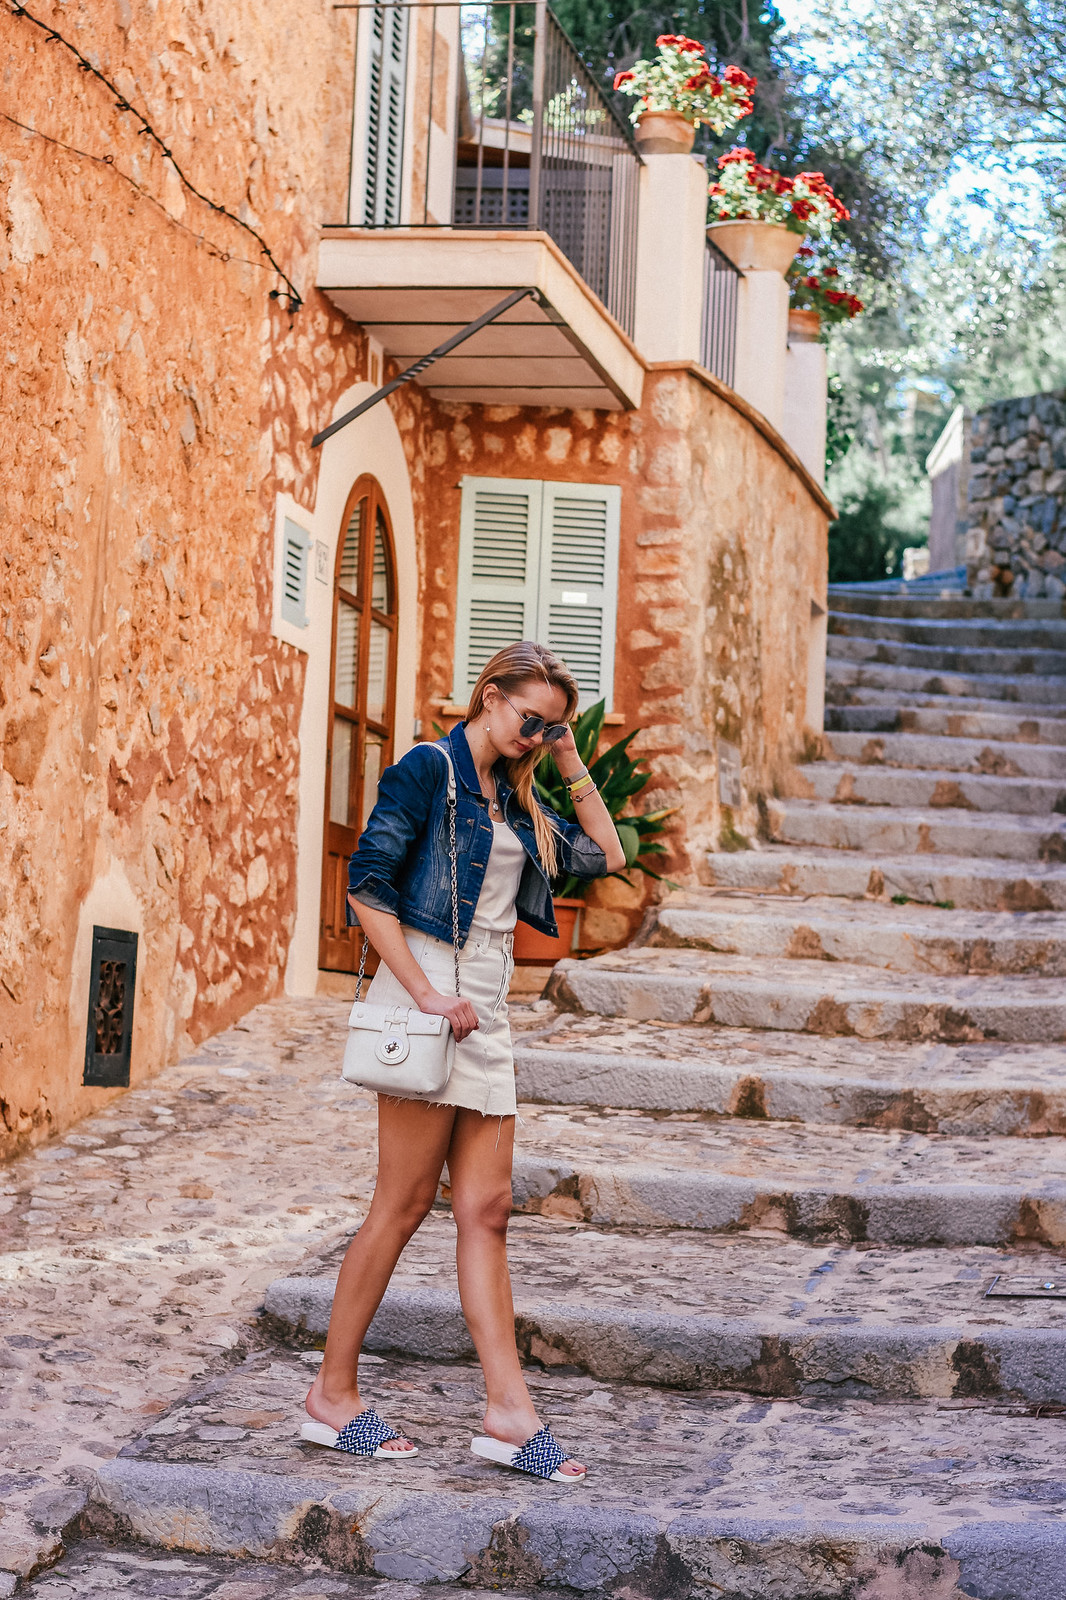 The prettiest village in Mallorca